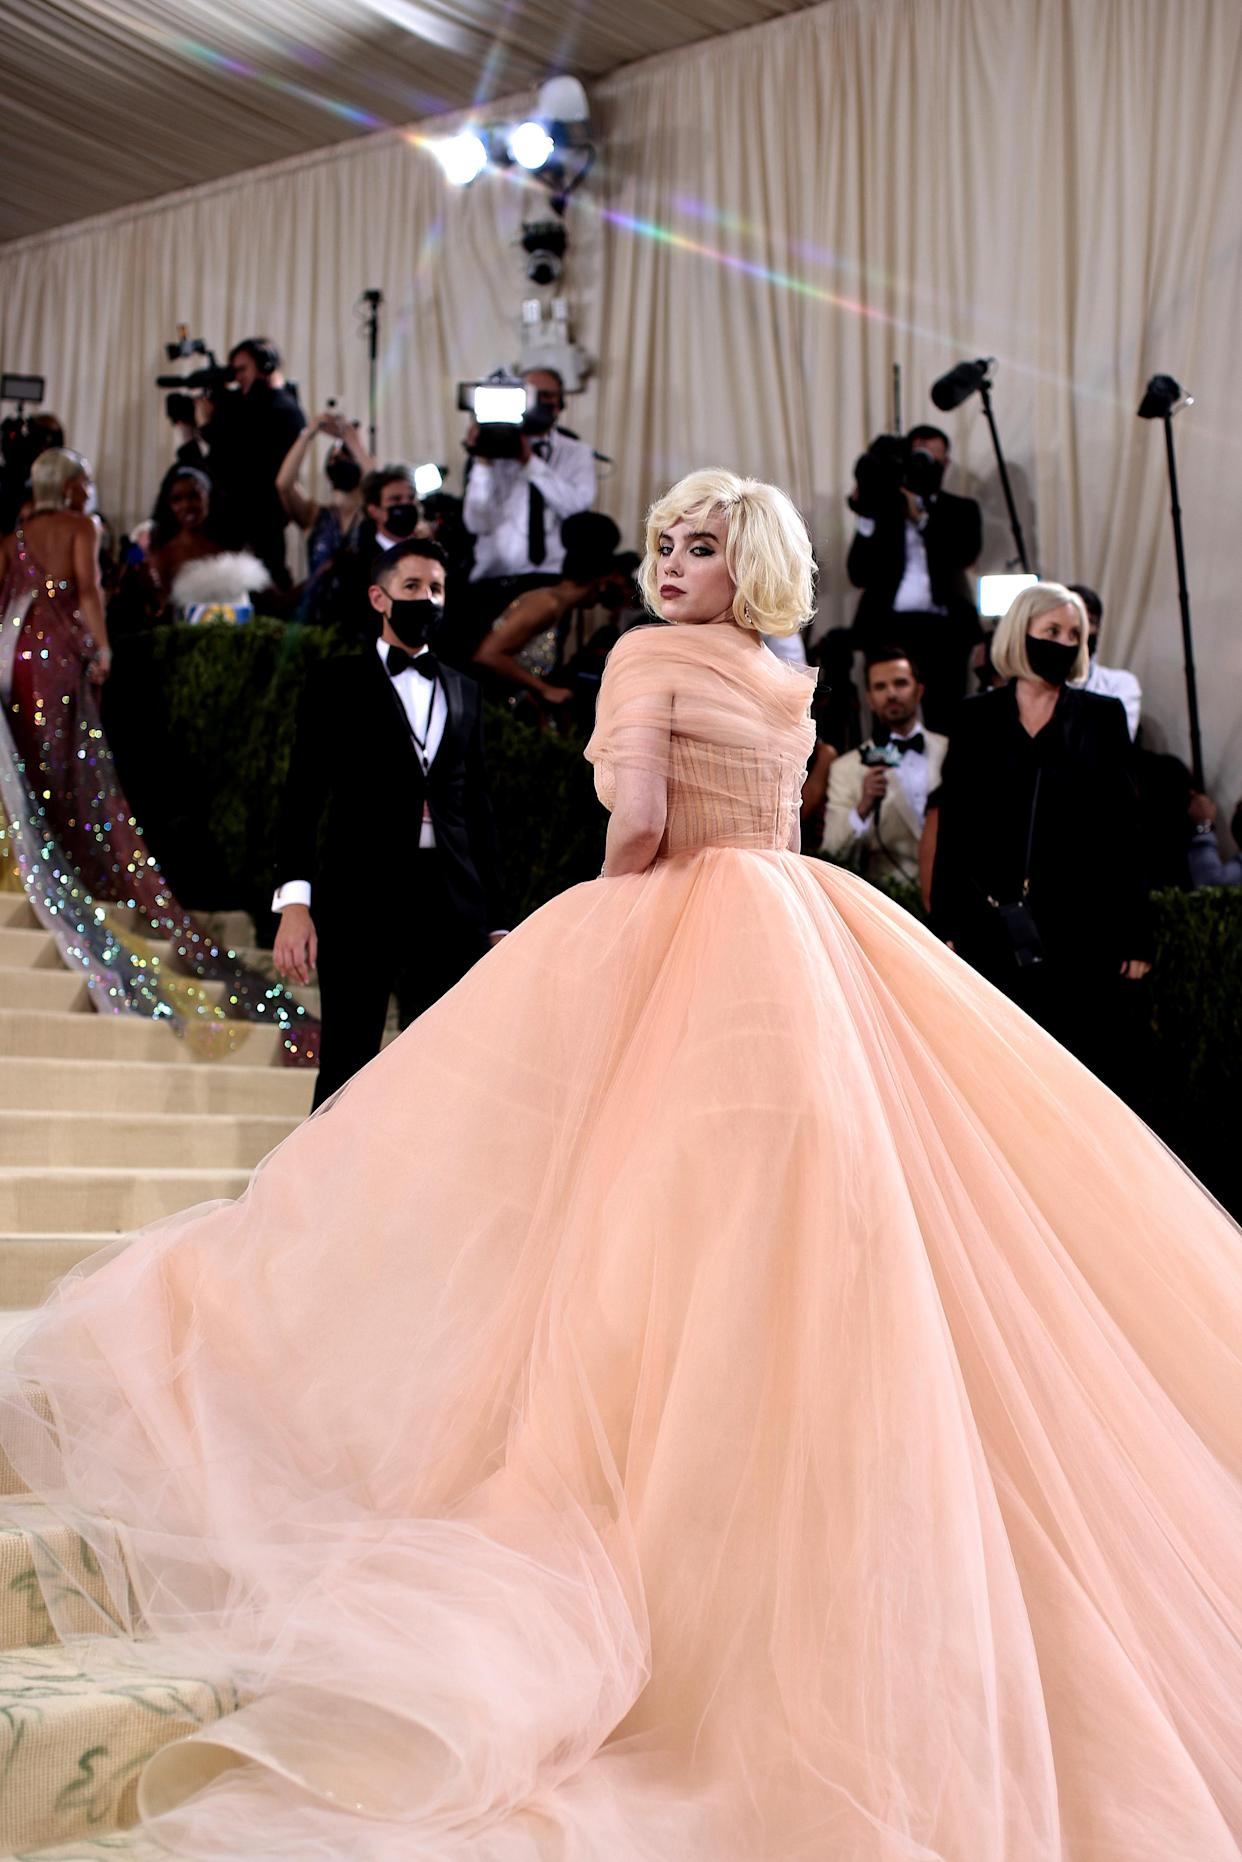 Billie Eilish attends The 2021 Met Gala Celebrating In America: A Lexicon Of Fashion at Metropolitan Museum of Art on September 13, 2021 in New York City. (Getty Images)